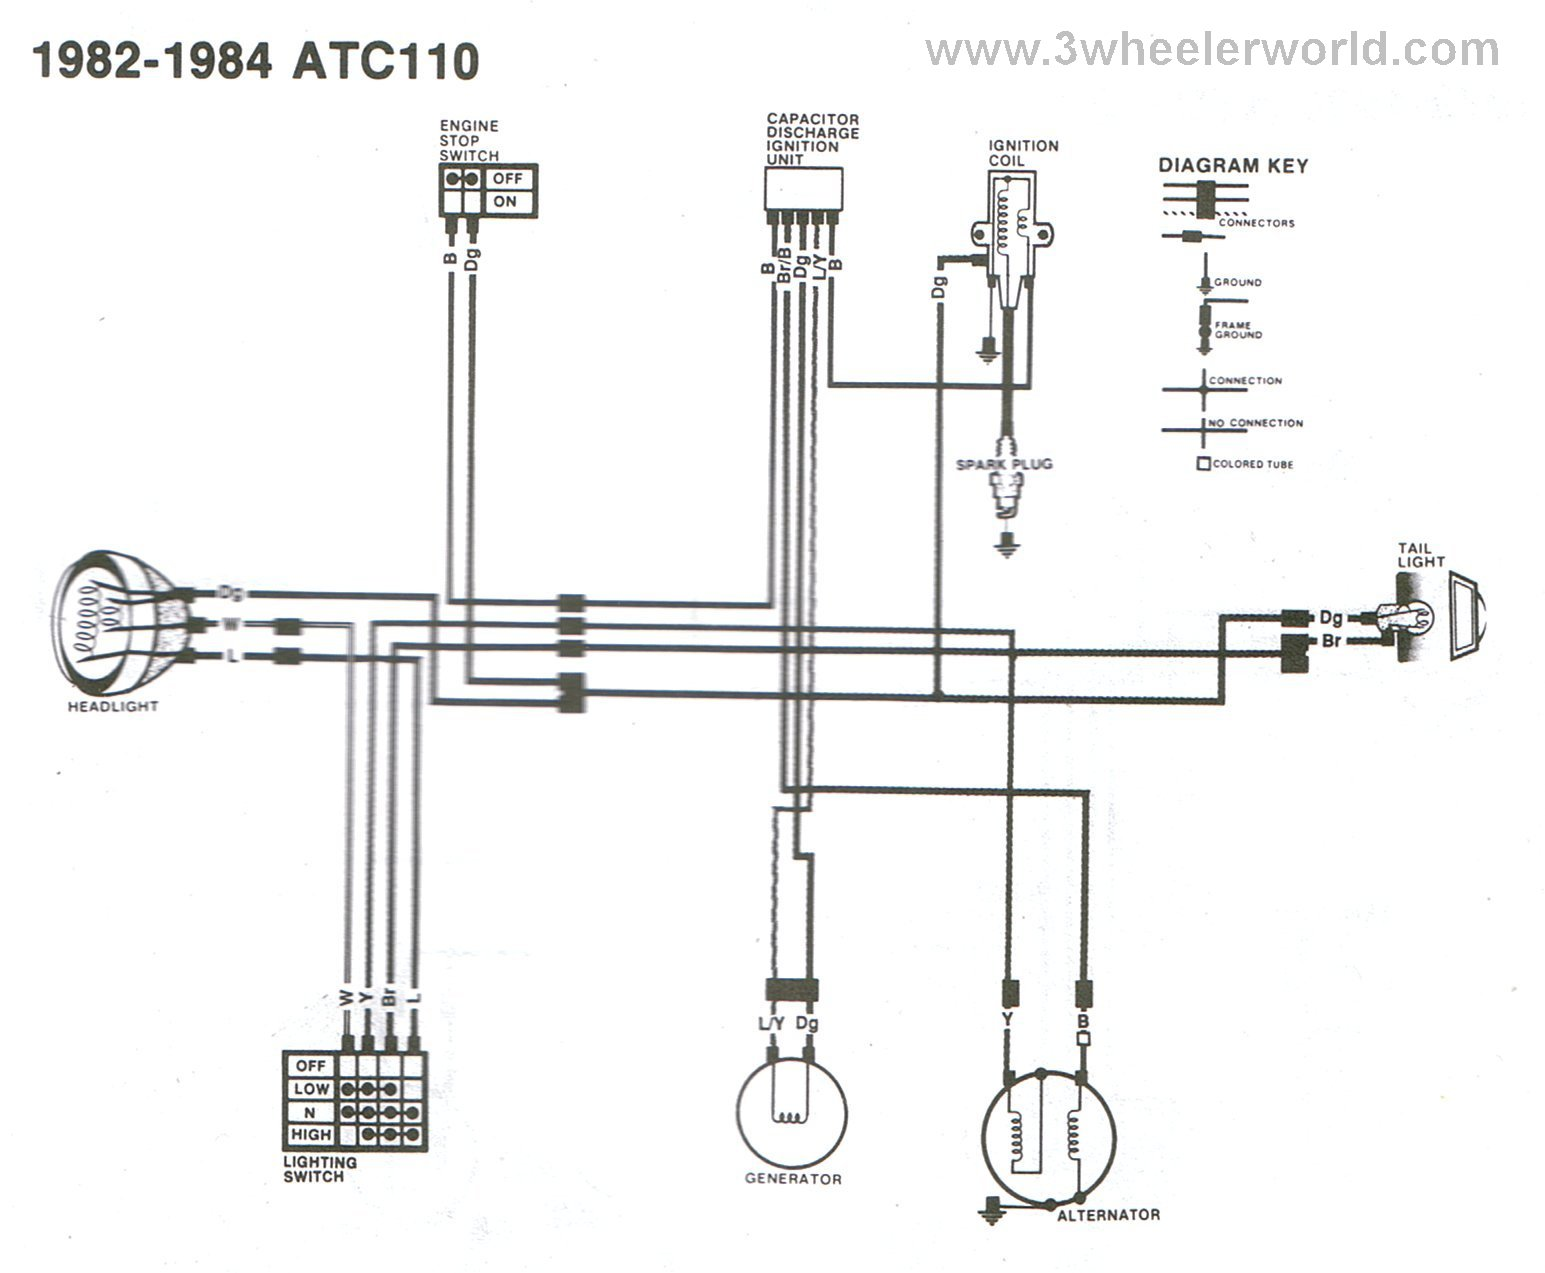 3 wheeler world-tech help honda wiring diagrams, Wiring diagram